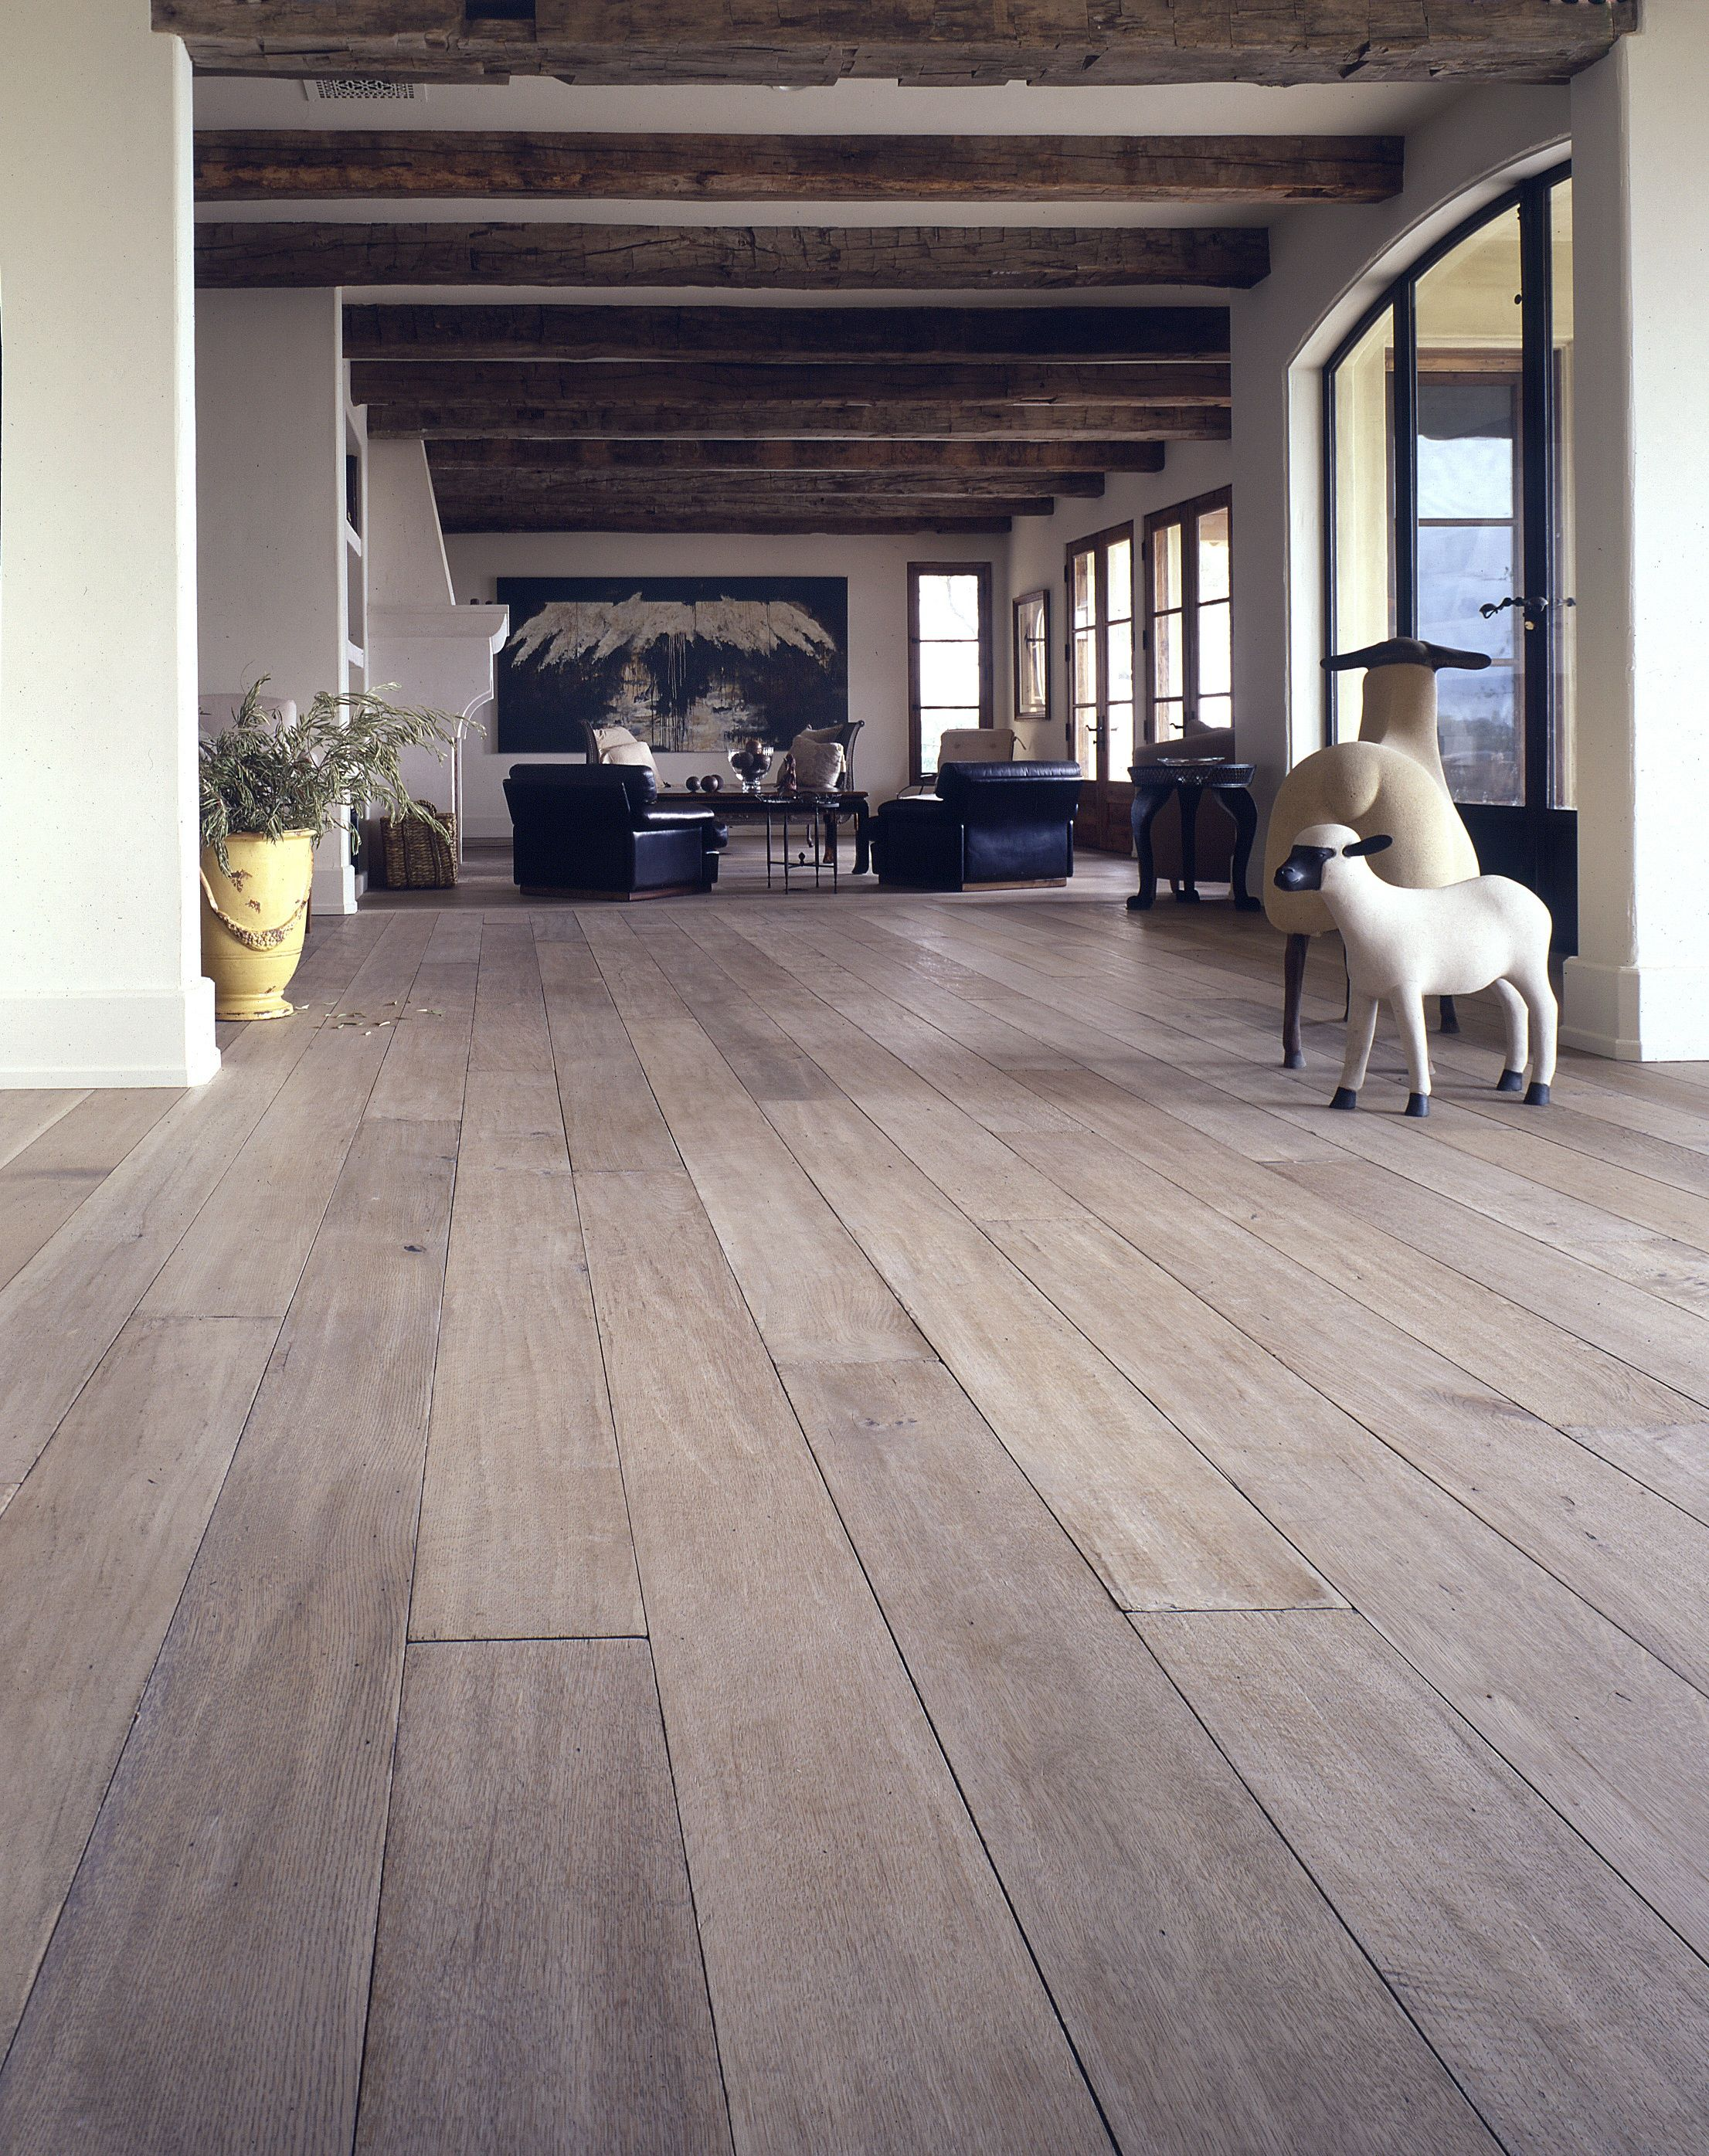 Off White And Grey Fumed Wood Floors  Of Light Wood Or - Modern hardwood floors